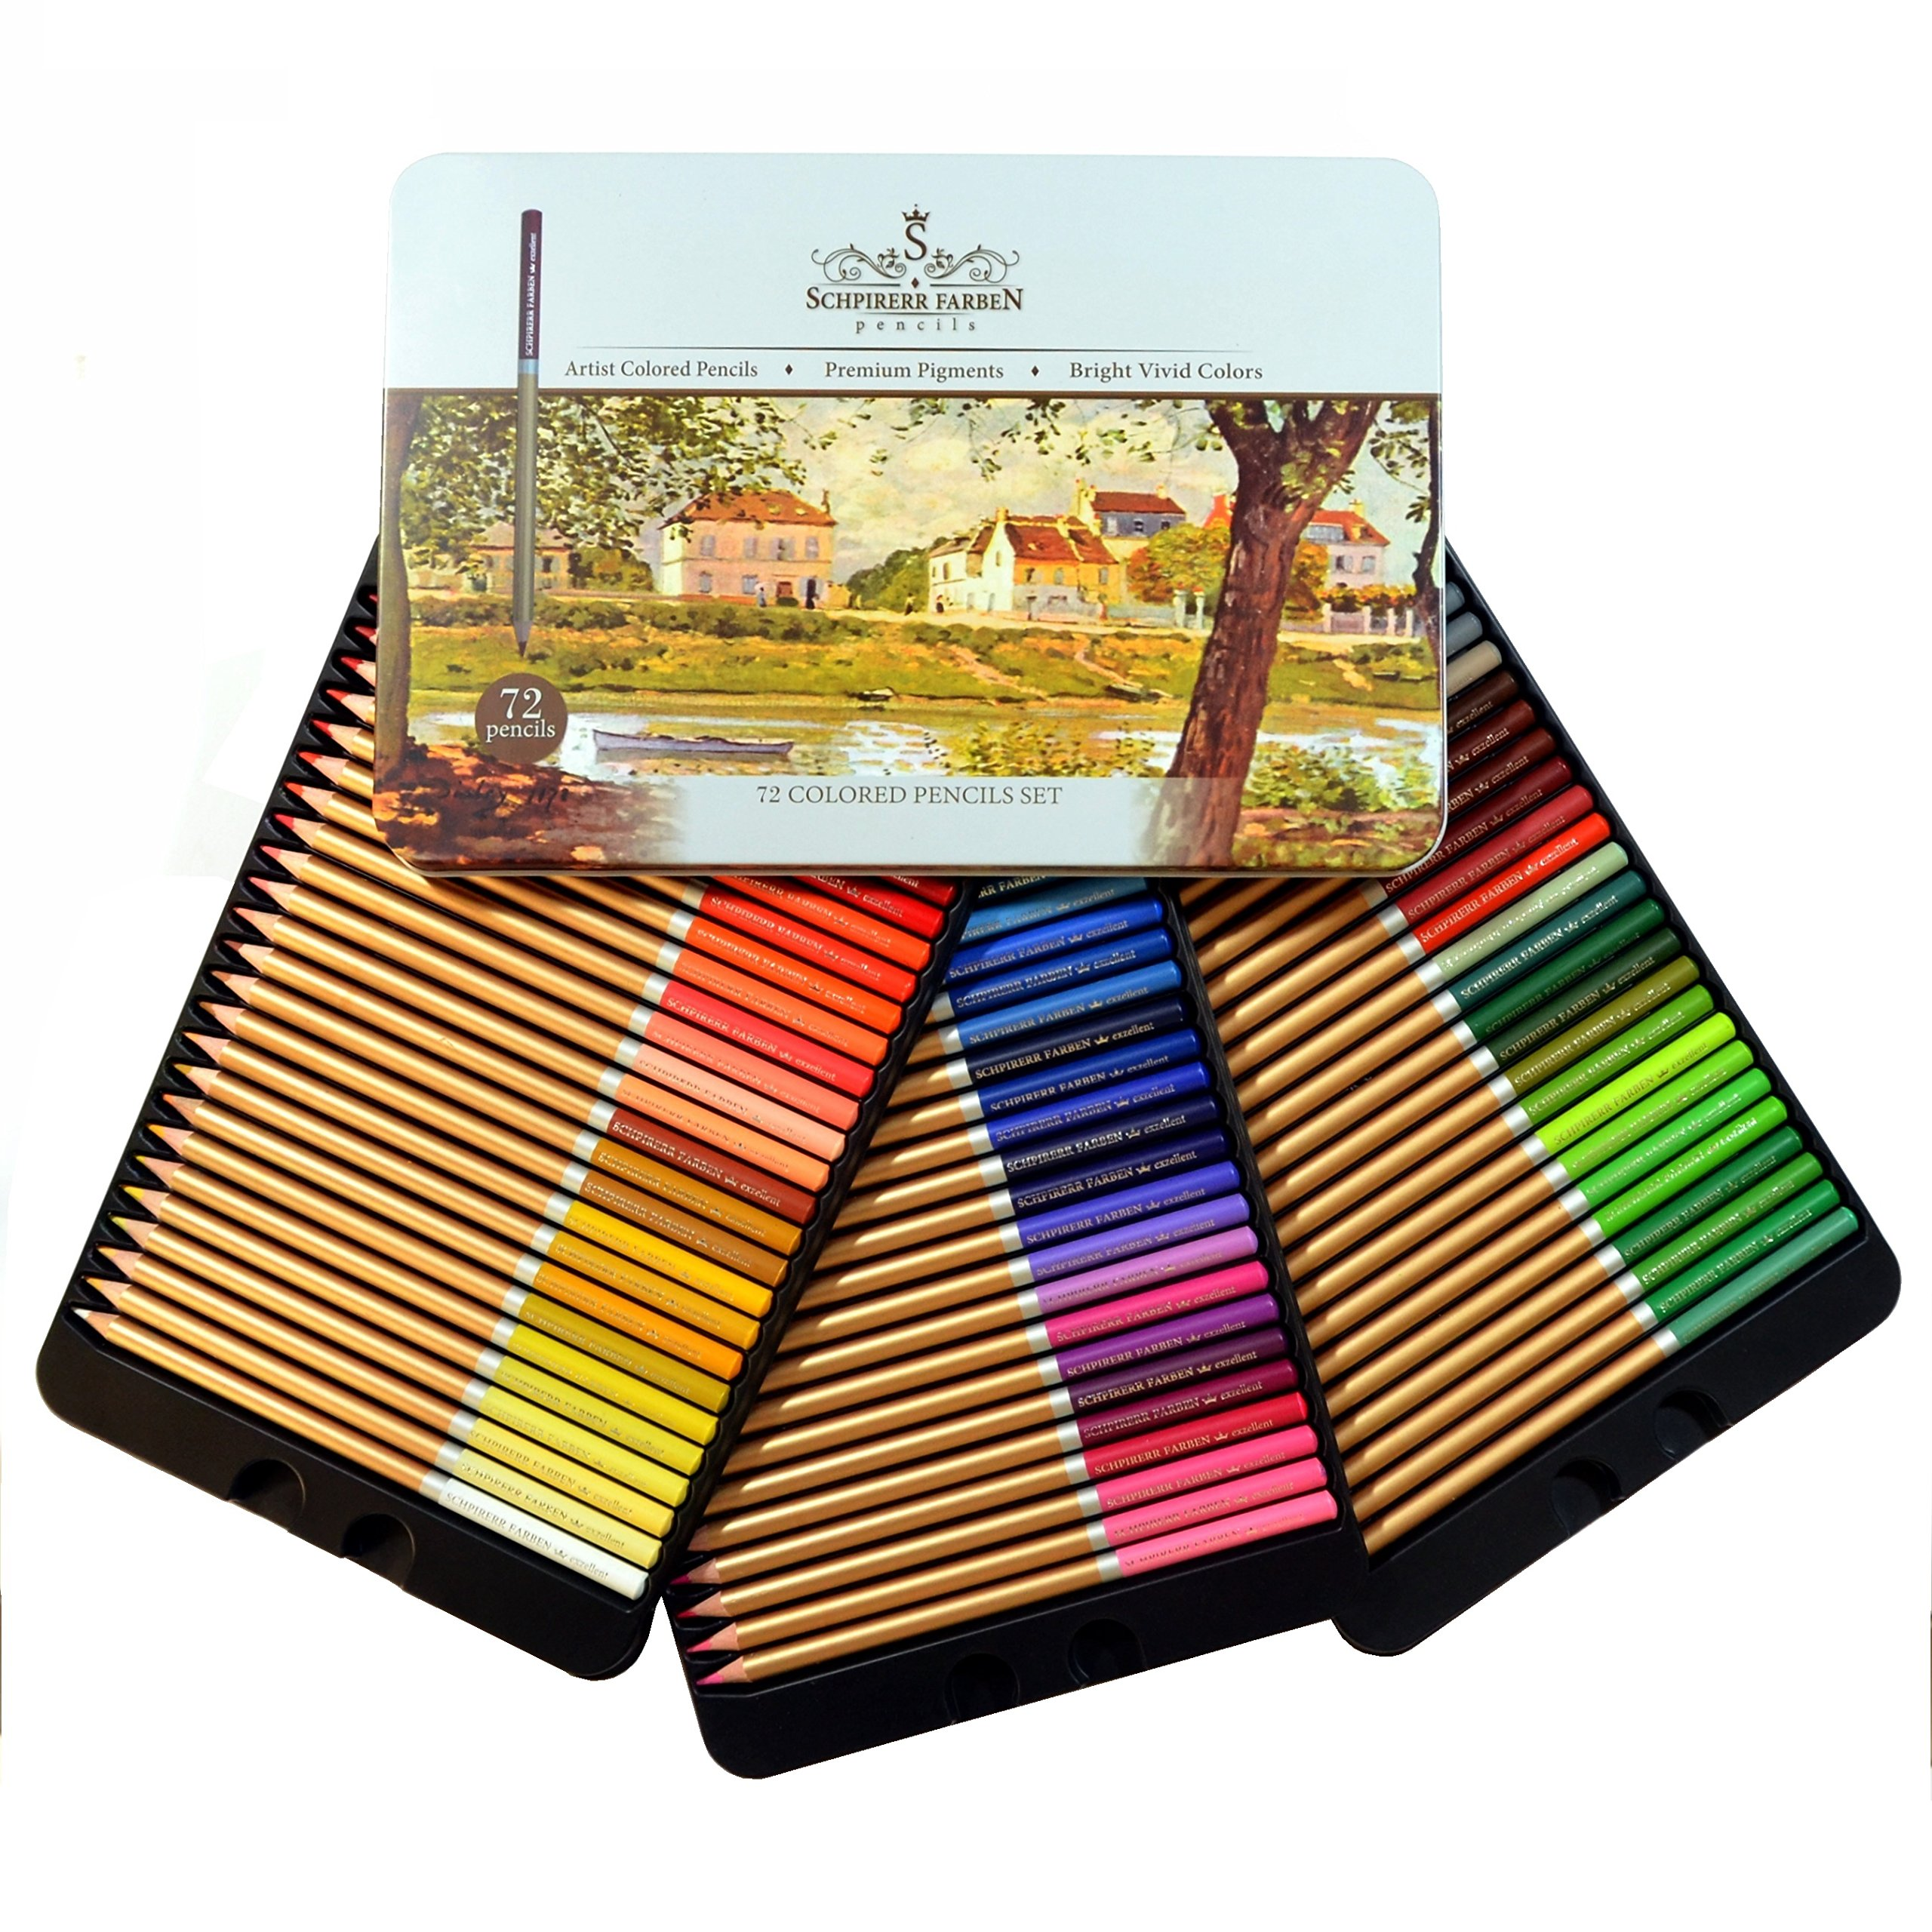 Professional Premium numbered 72 Colored Pencils Set By Schpirerr Farben – Oil-Based Soft Core – Ideal For Adults, Artists, Sketchers & Children – Coloring Sketching & Doodling by Goodyism